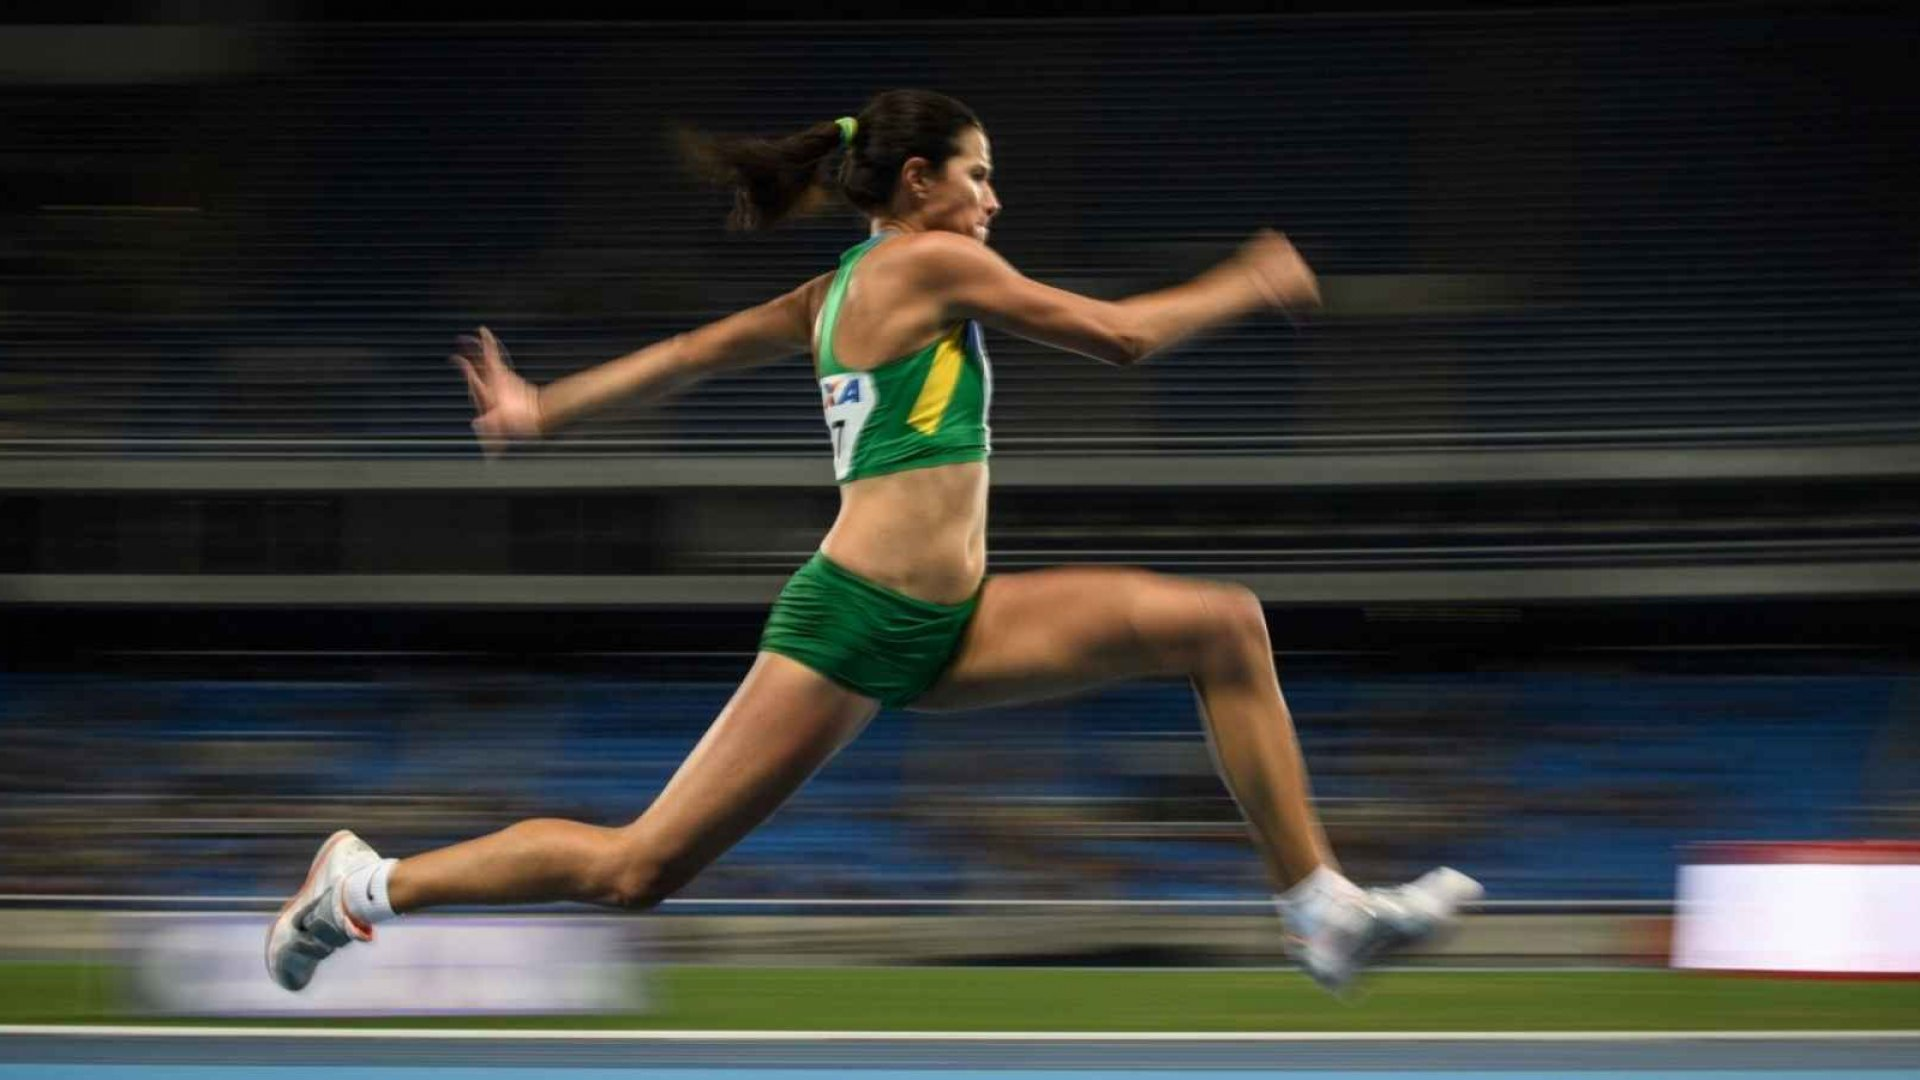 What Olympians Can Teach You About Reaching Audacious Goals